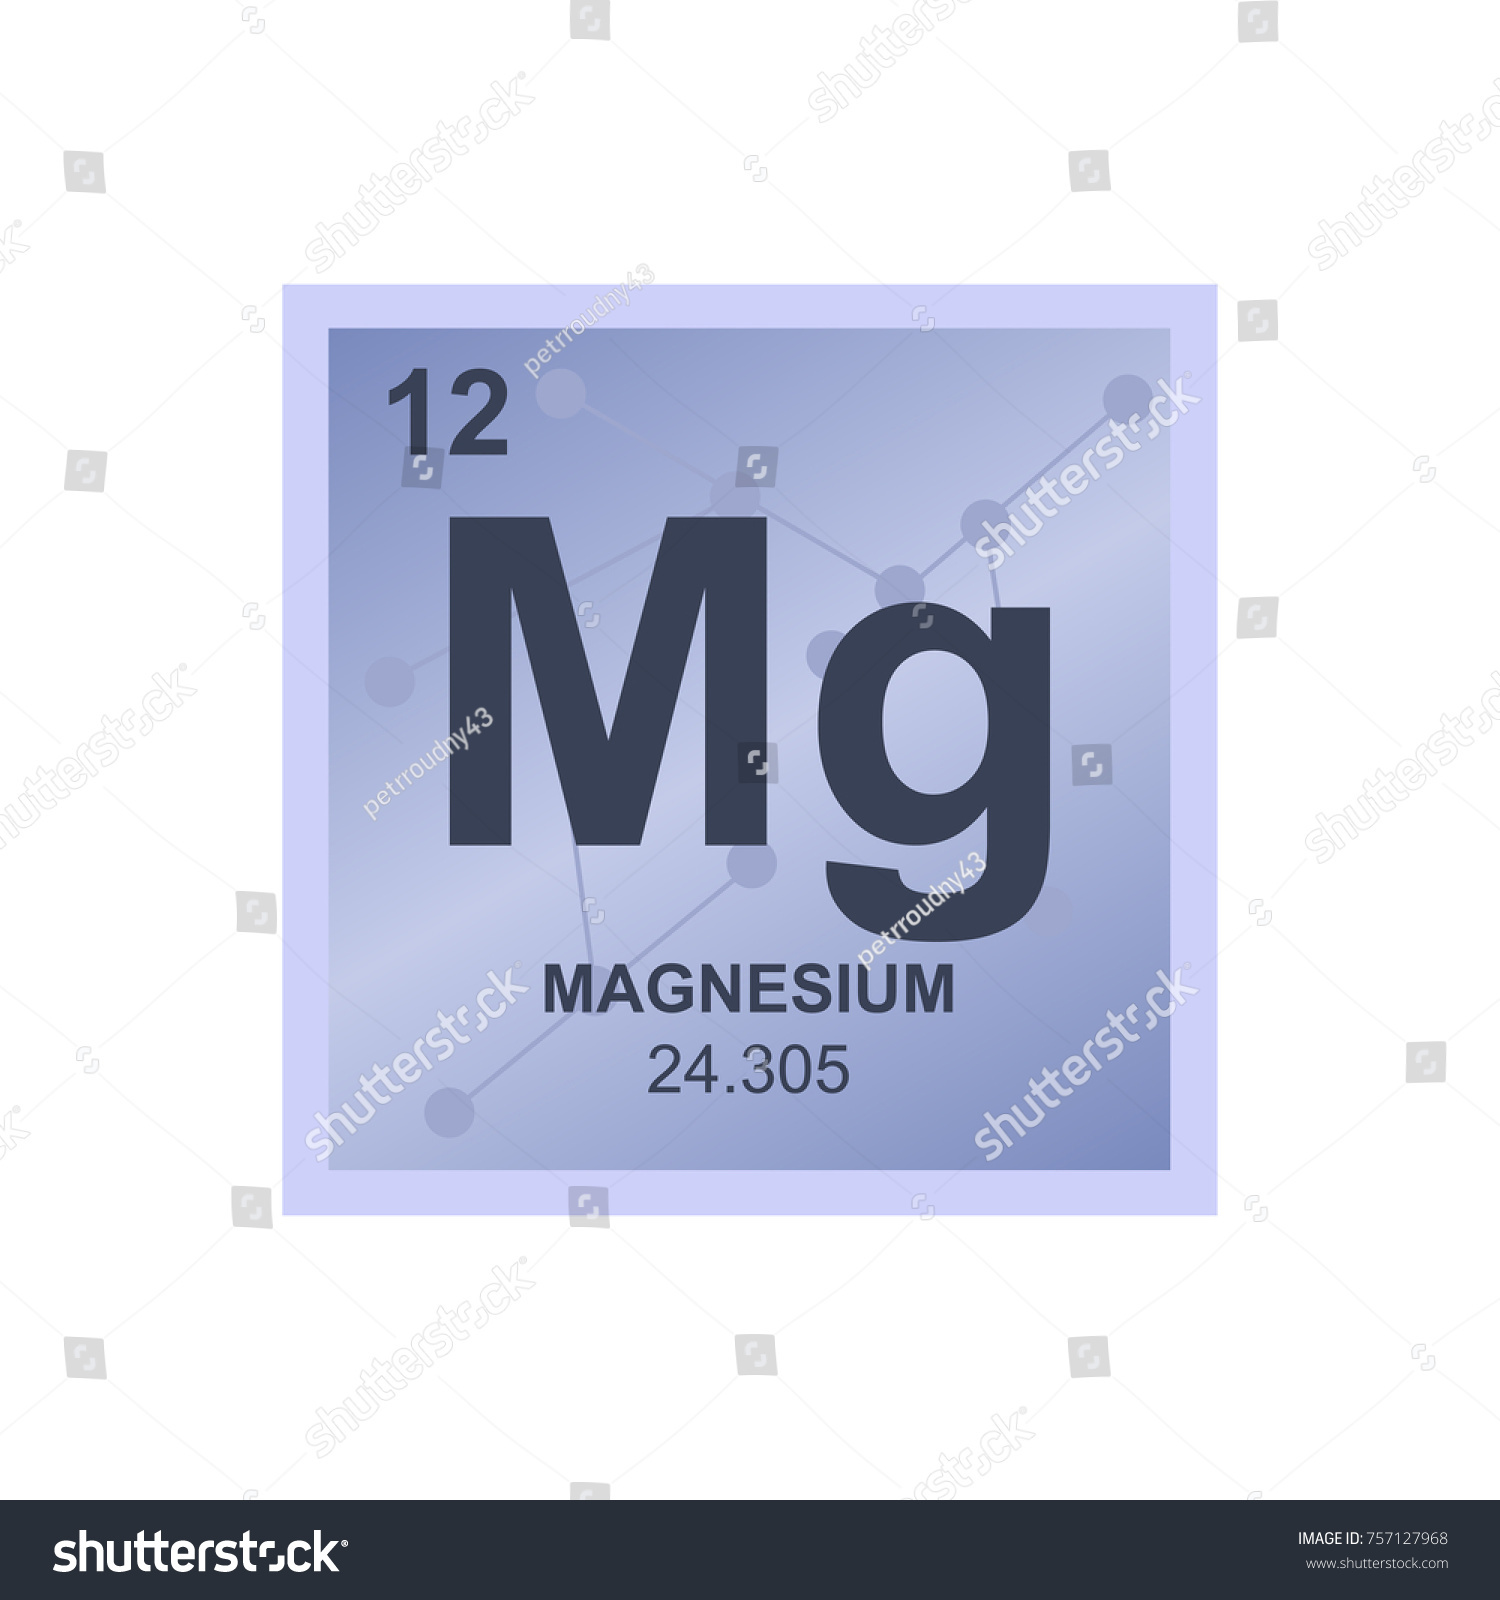 Krypton symbol periodic table gallery types of organisational kr symbol periodic table gallery periodic table images stock vector vector symbol of magnesium from the gamestrikefo Images